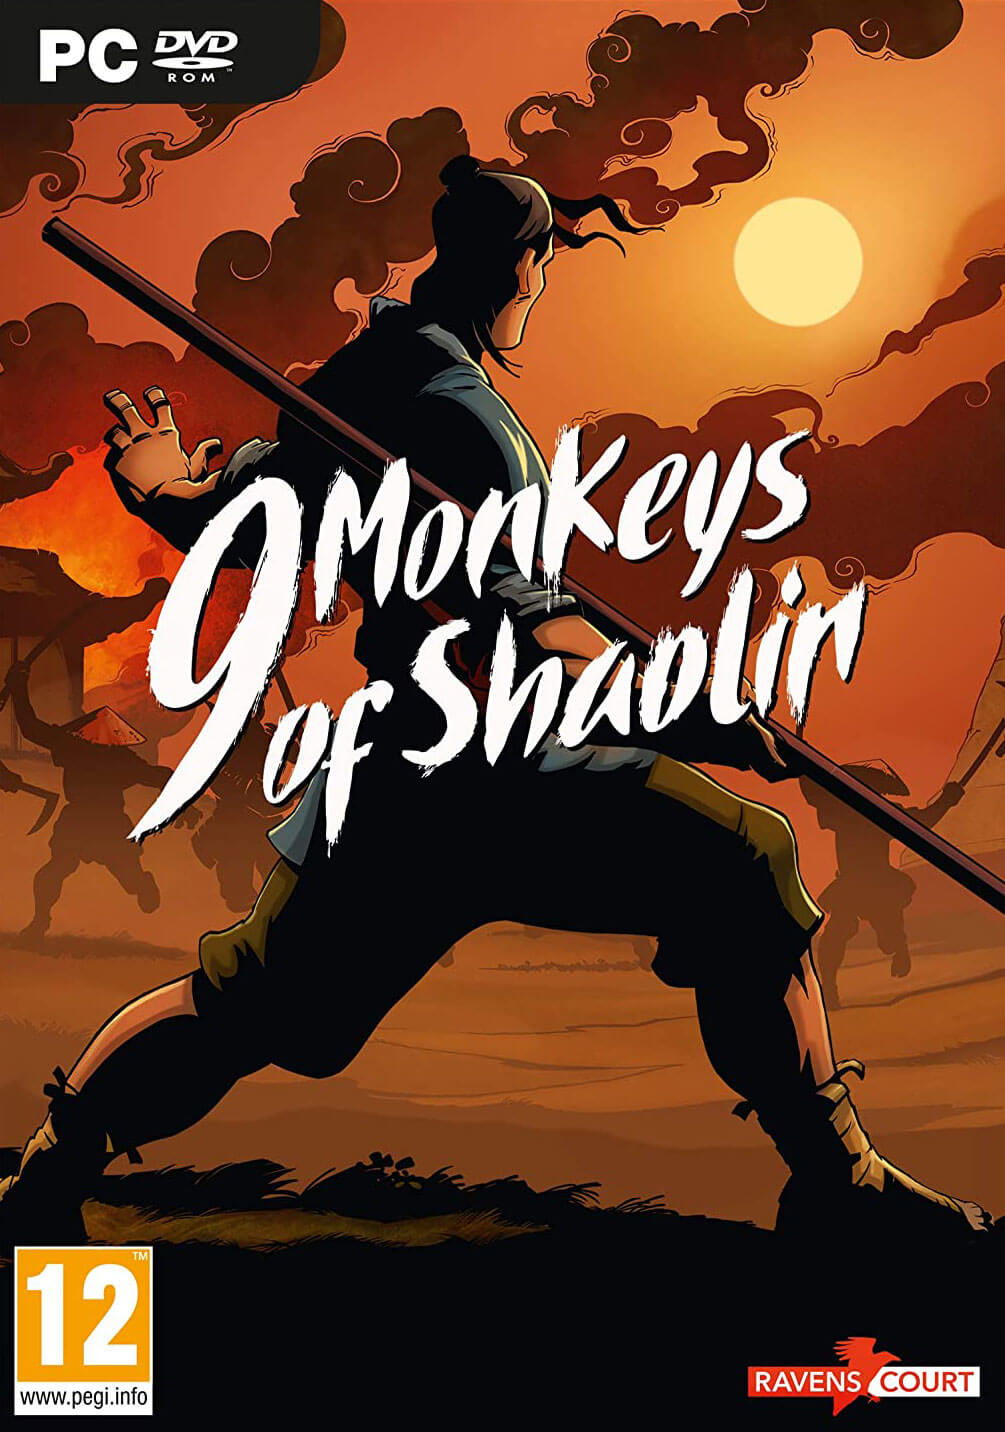 Download 9 Monkeys of Shaolin, Download game 9 Monkeys of Shaolin, Download game 9 Monkeys of Shaolin, Download free game 9 Monkeys of Shaolin, Download Fit Girl 9 Monkeys of Shaolin, Download healthy crack game of 9 Monkeys of Shaolin, Download compact version of 9 Monkeys game  of Shaolin, Game Review 9 Monkeys of Shaolin